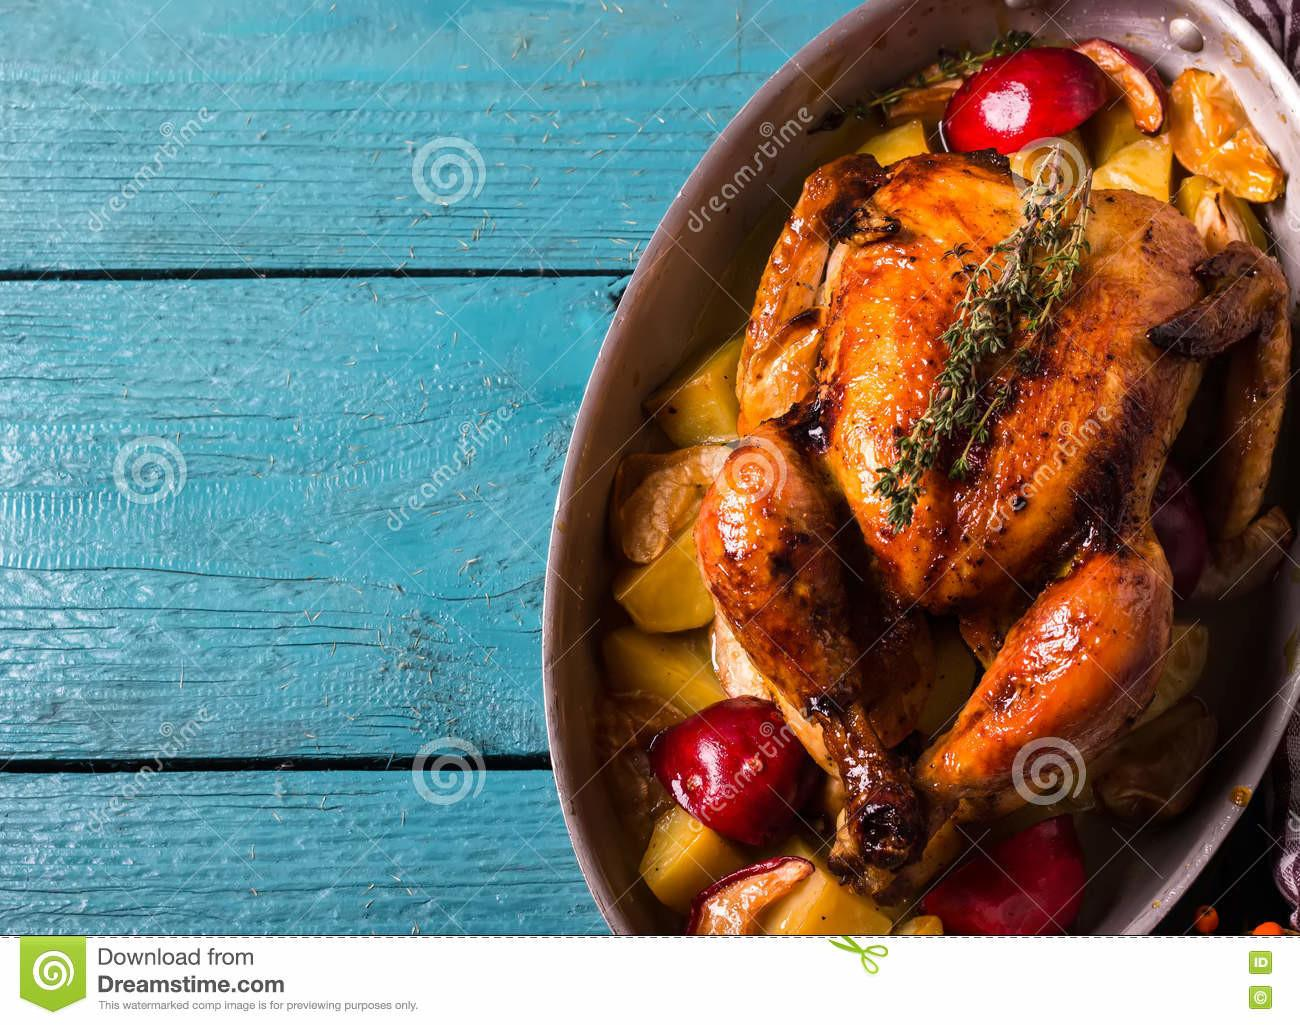 Homemade Roasted Thanksgiving Day Turkey Bright Blue